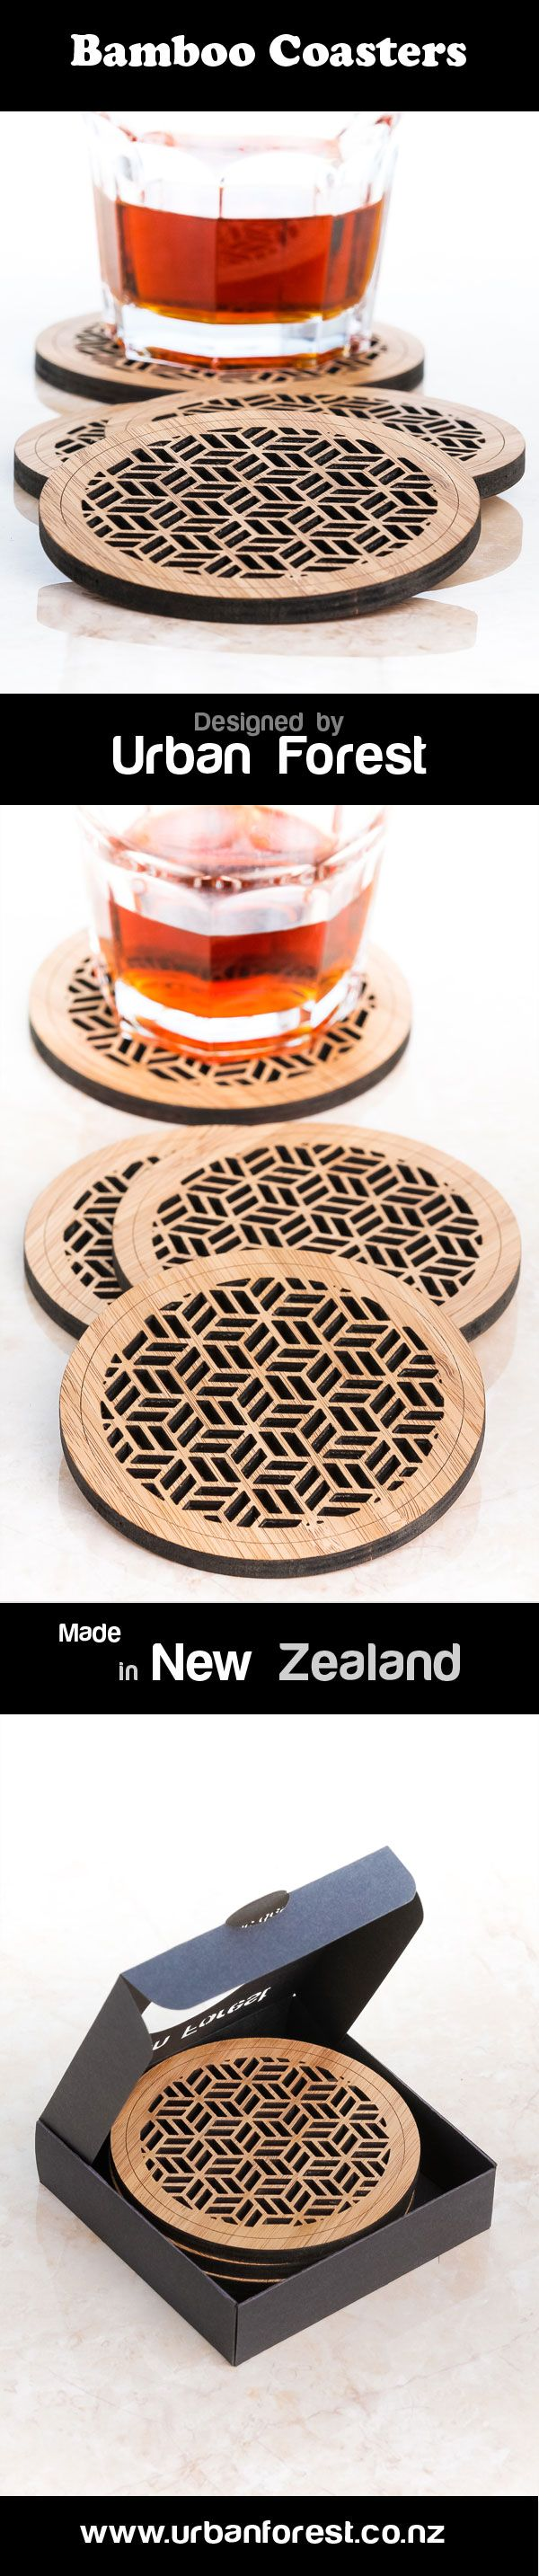 laser cut bamboo coasters design by Urban Forest. Made in New Zealand